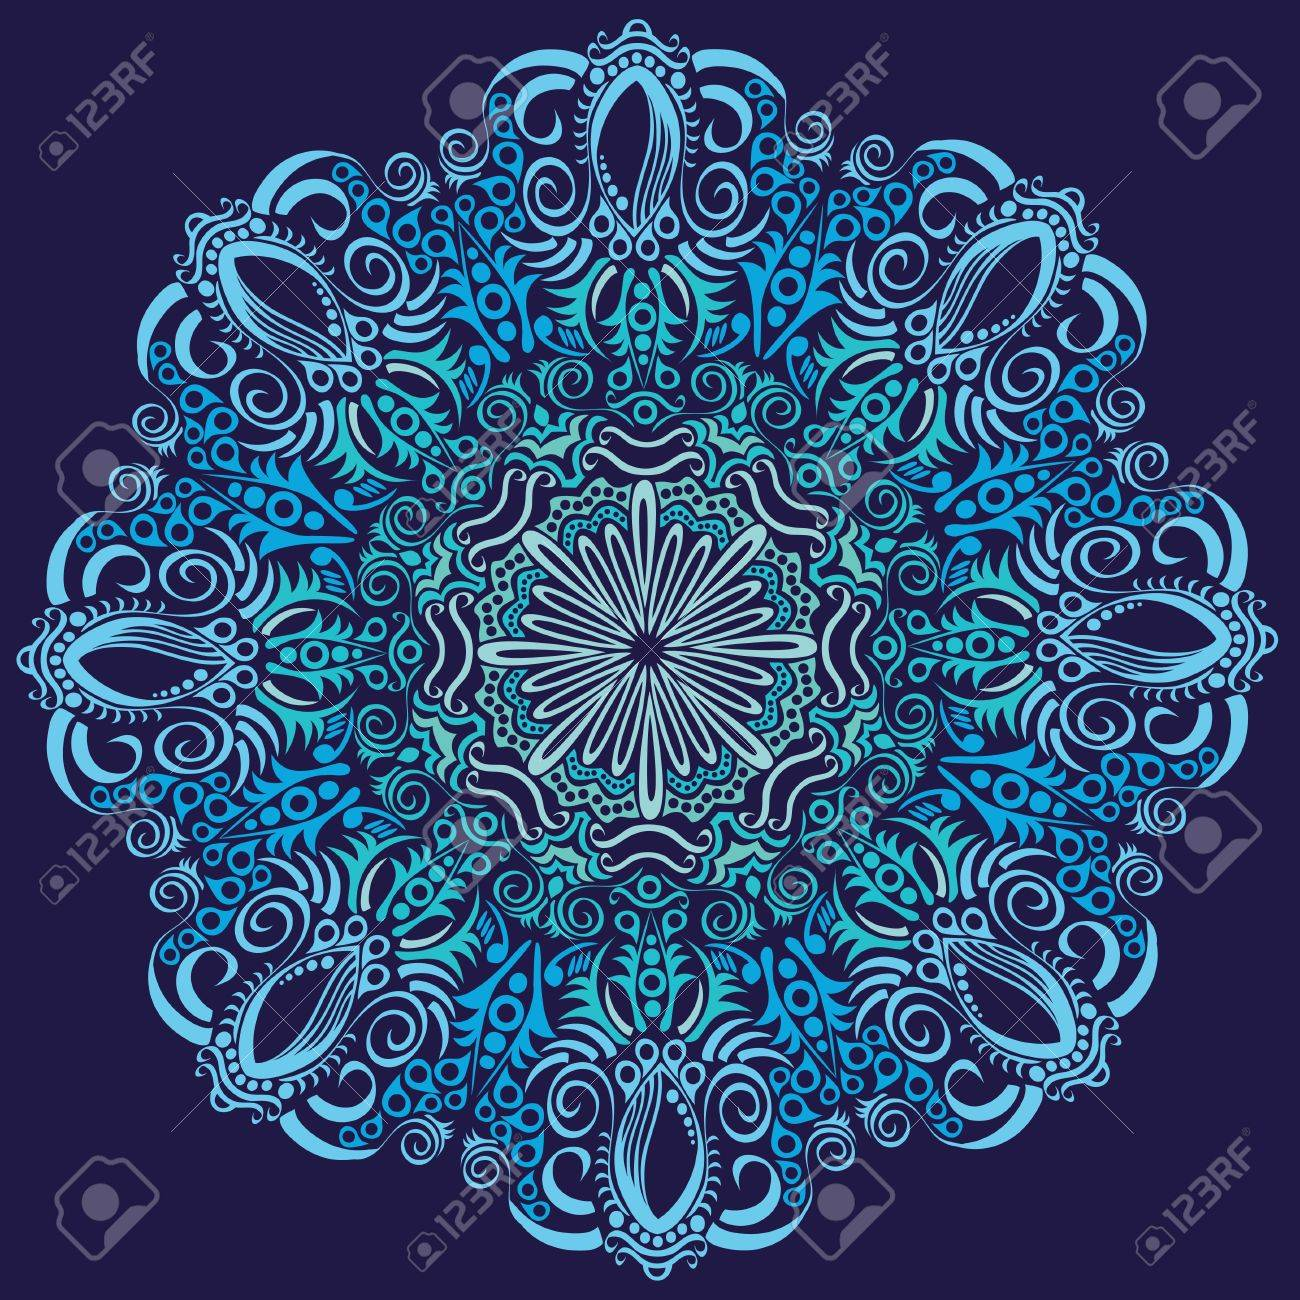 ornamental round lace pattern, circle background with many details, looks like crocheting handmade lace Stock Vector - 14325515